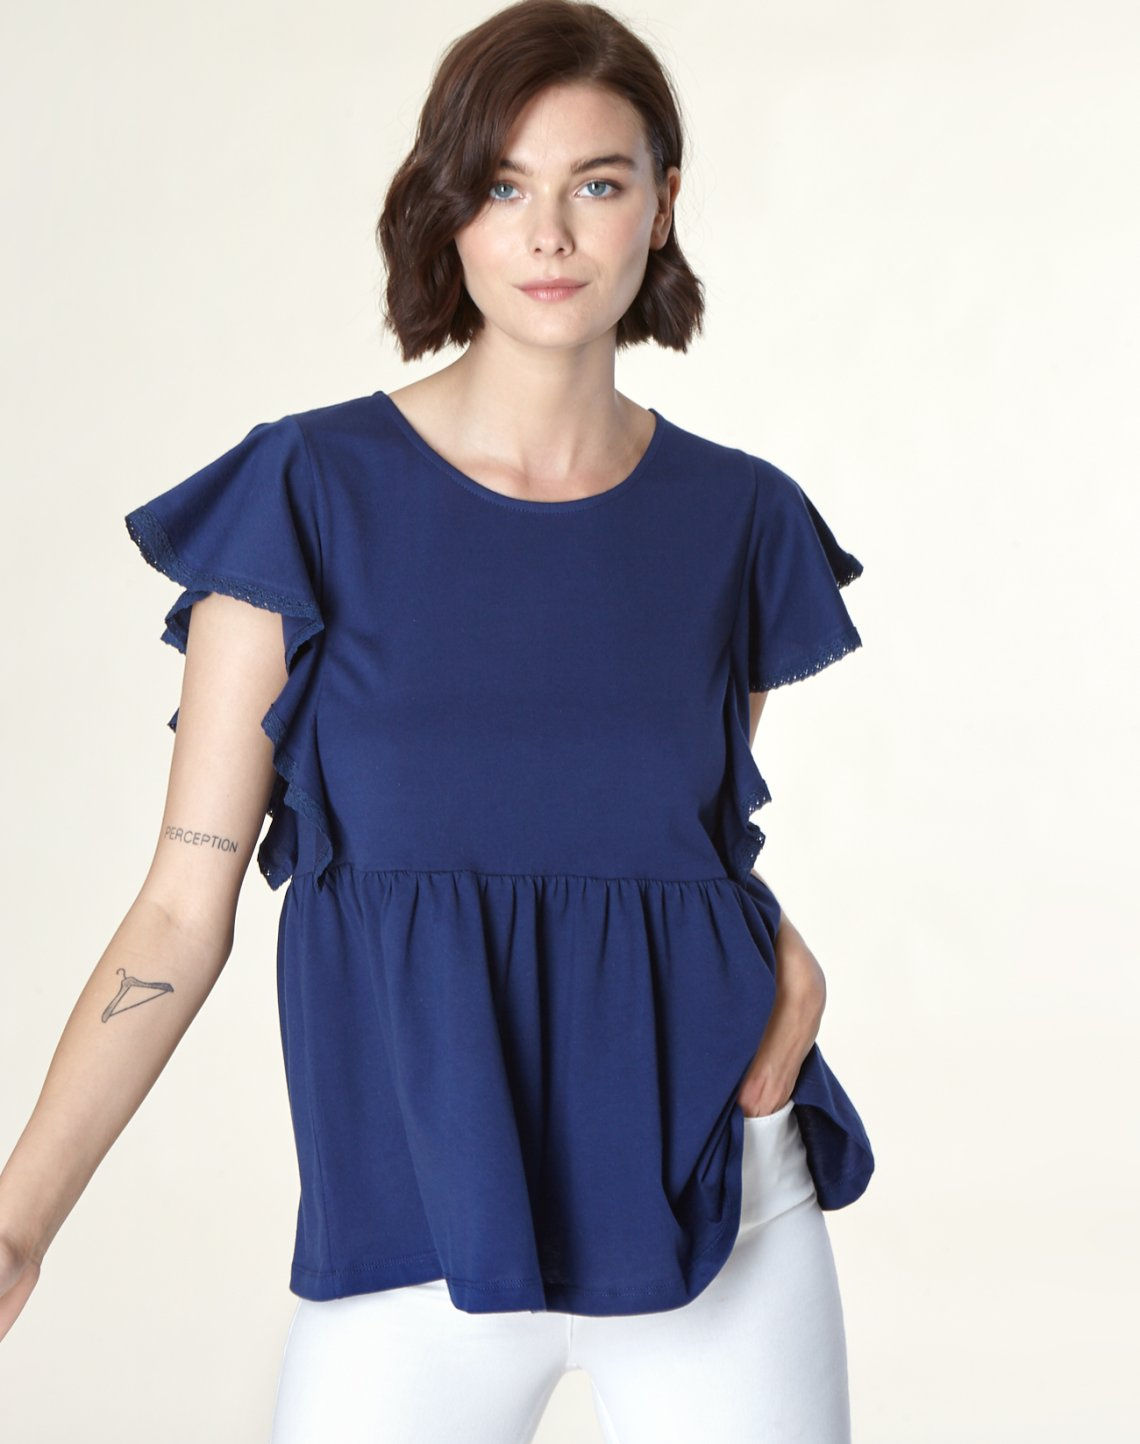 Peplum top with lace detail